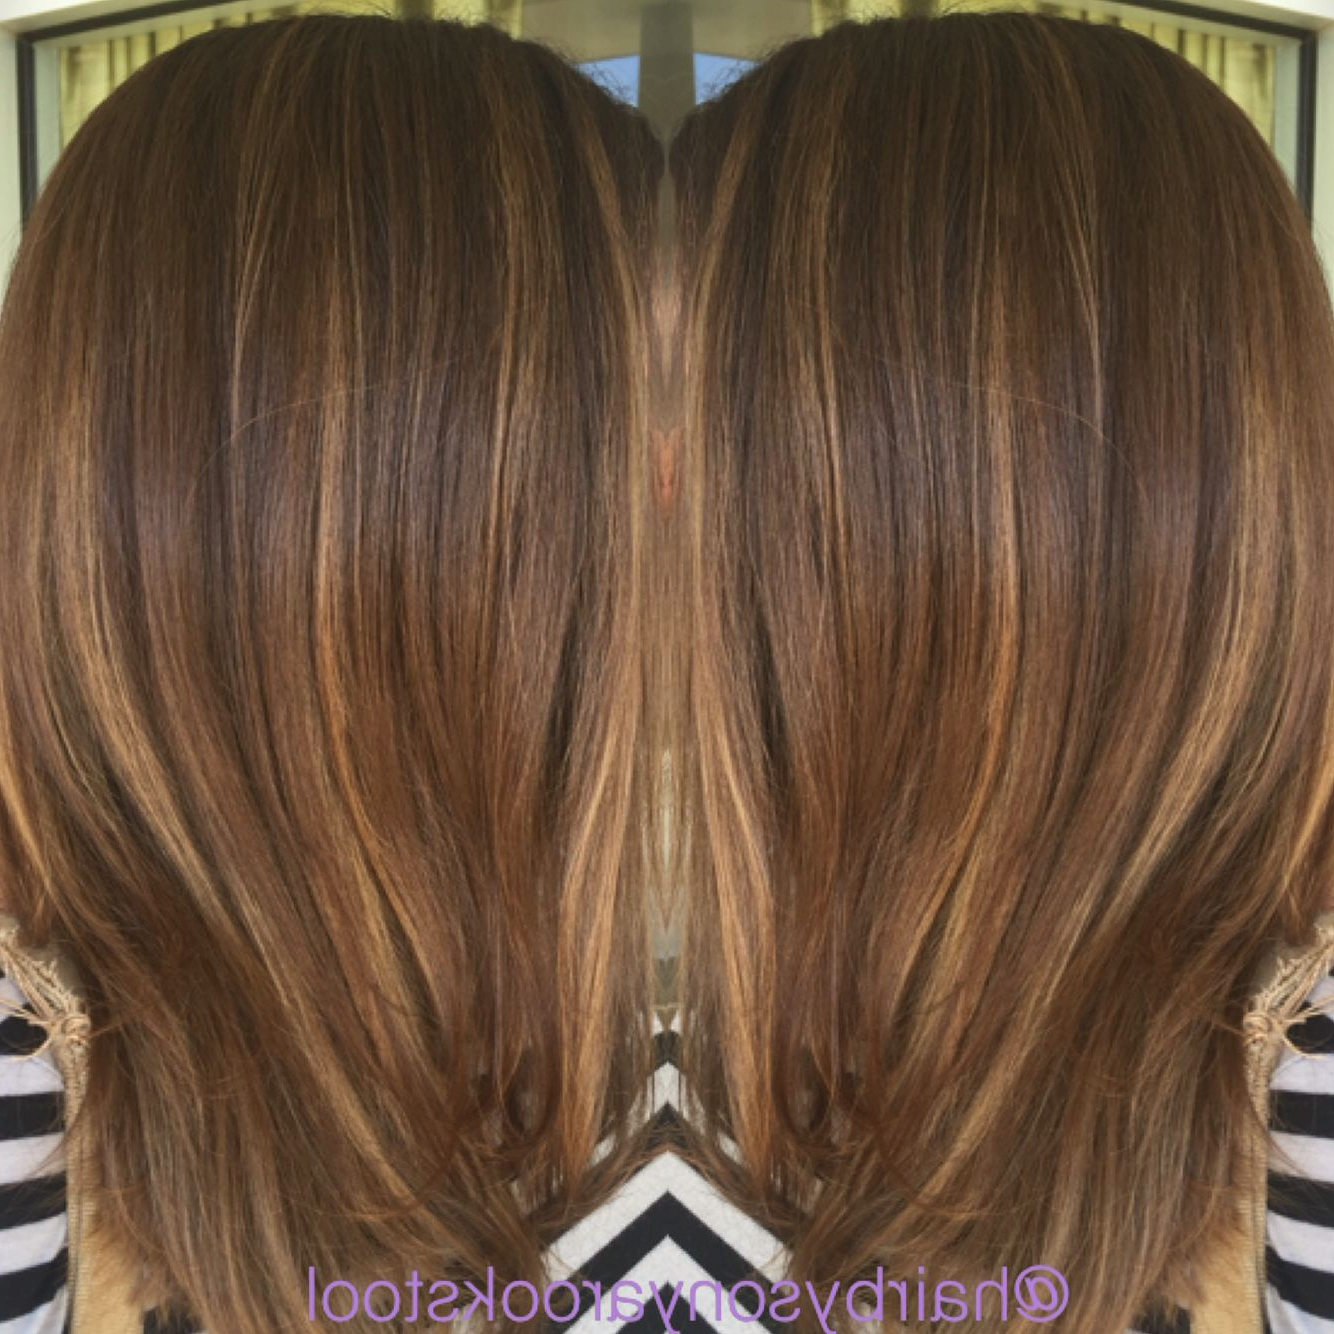 Caramel Blonde Balayage With Her Natural Brown Base Color Pertaining To Caramel Blonde Balayage On Inverted Lob Hairstyles (View 7 of 20)